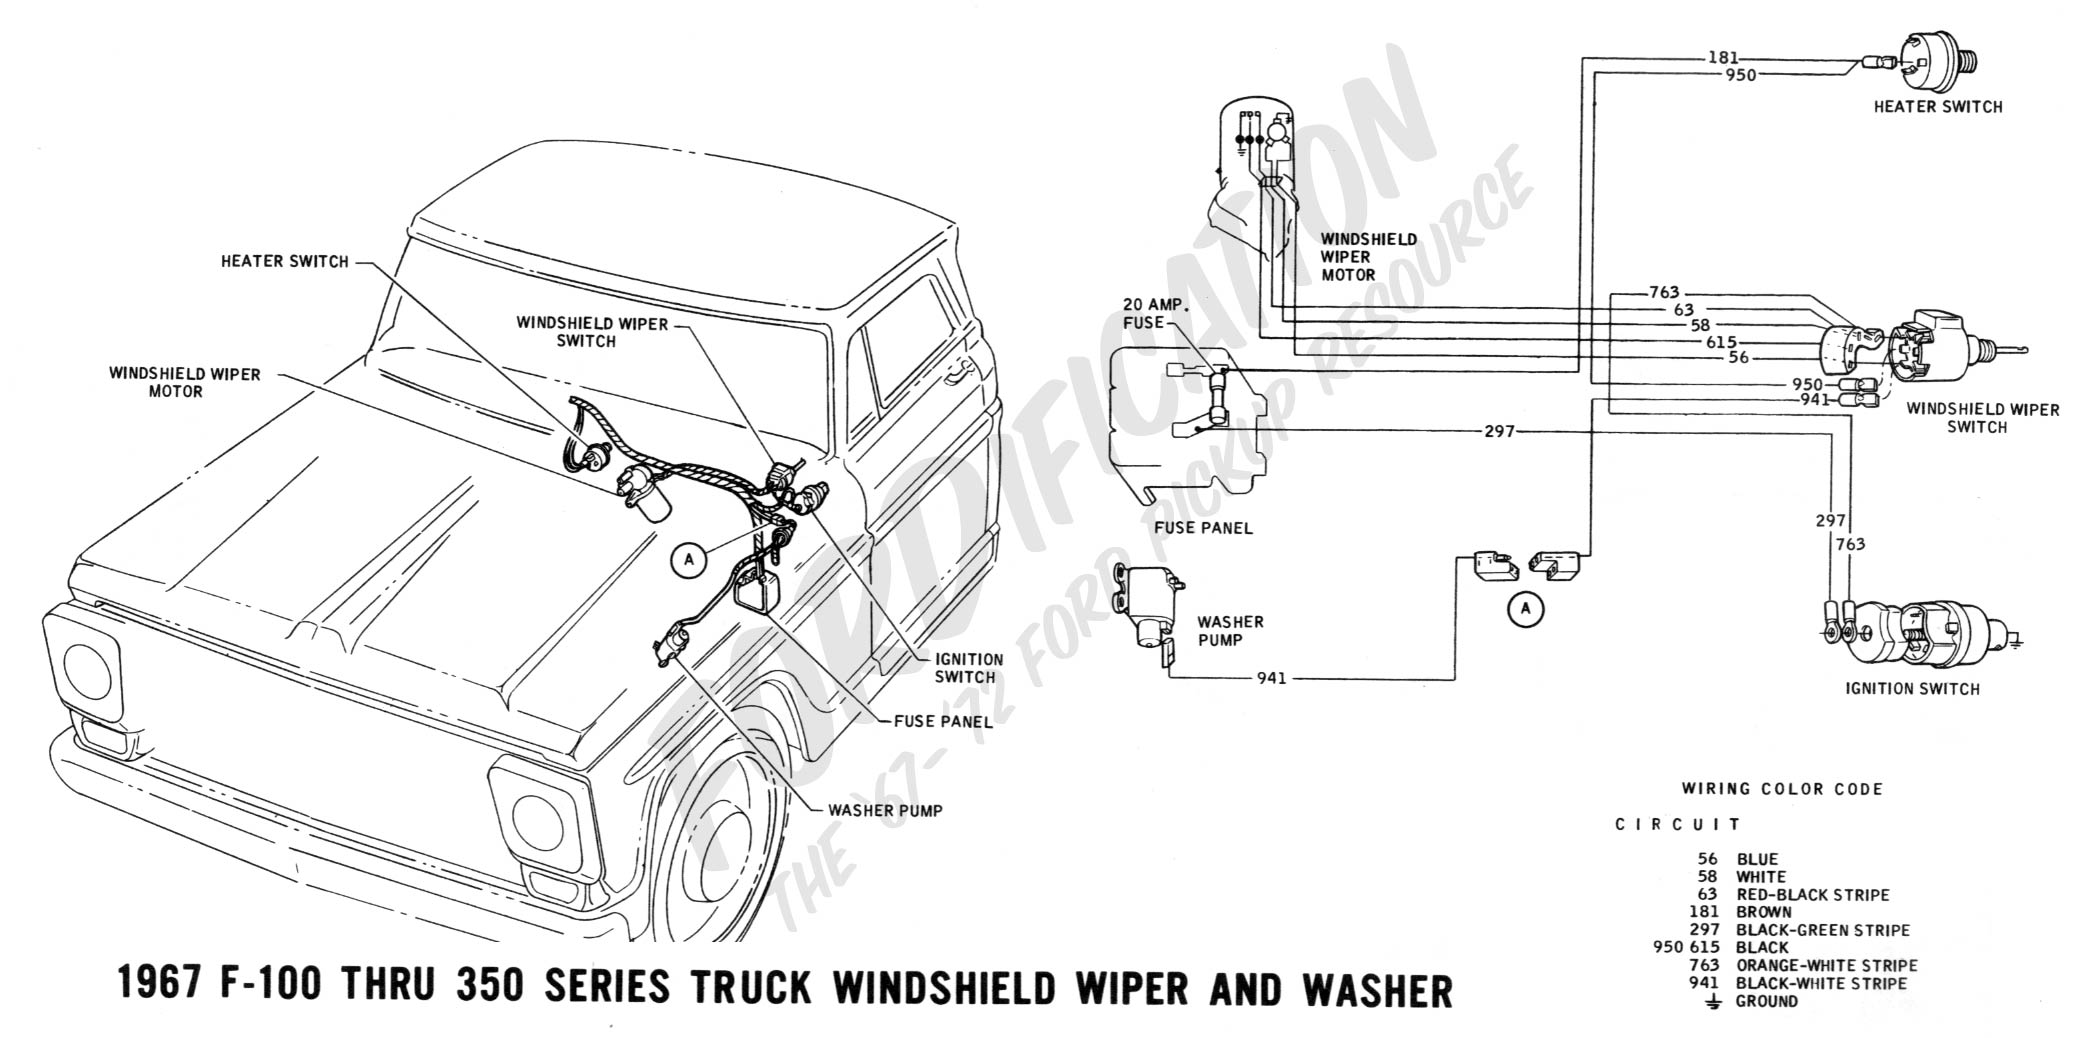 wiring 1967wipers ford truck technical drawings and schematics section h wiring 1971 ford f100 ignition switch wiring diagram at suagrazia.org